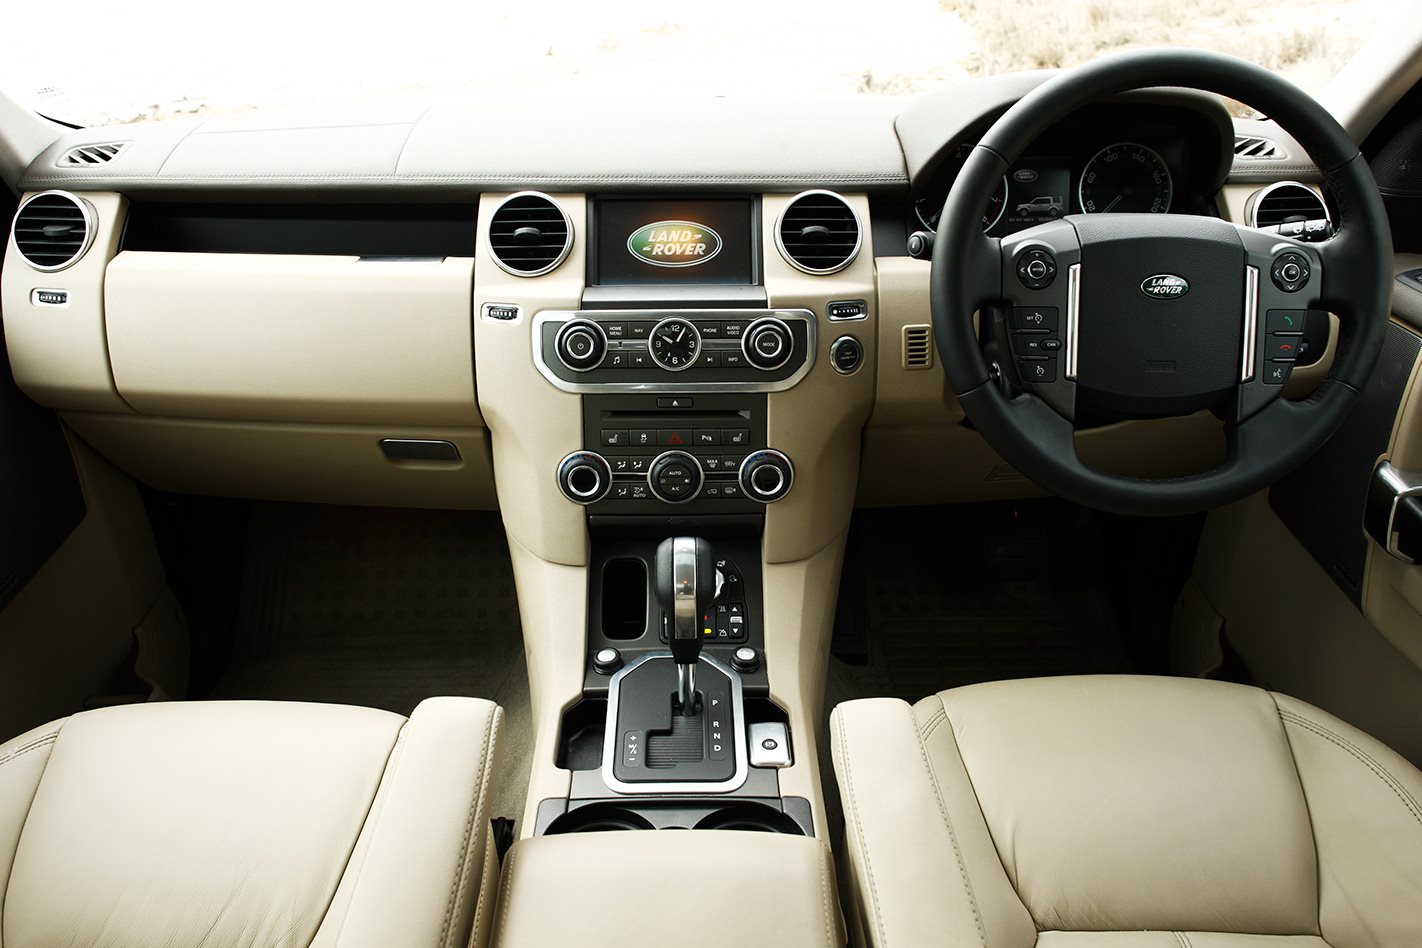 2011 Land Rover Discovery 4 interior.jpg